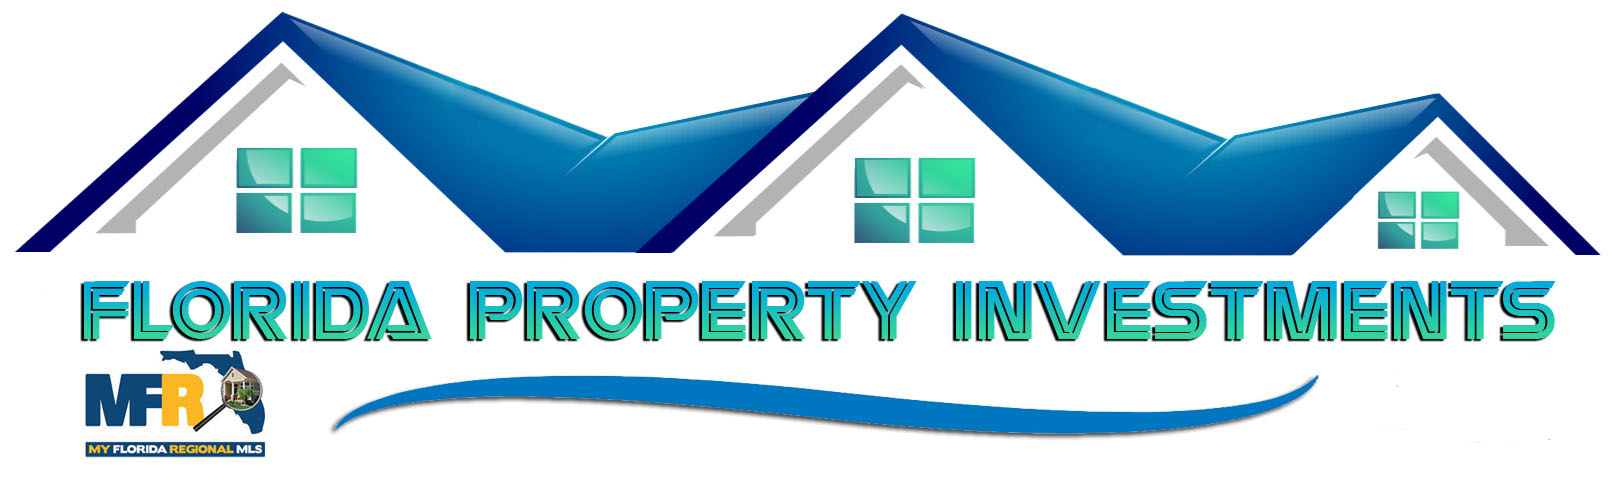 Florida Property Investments